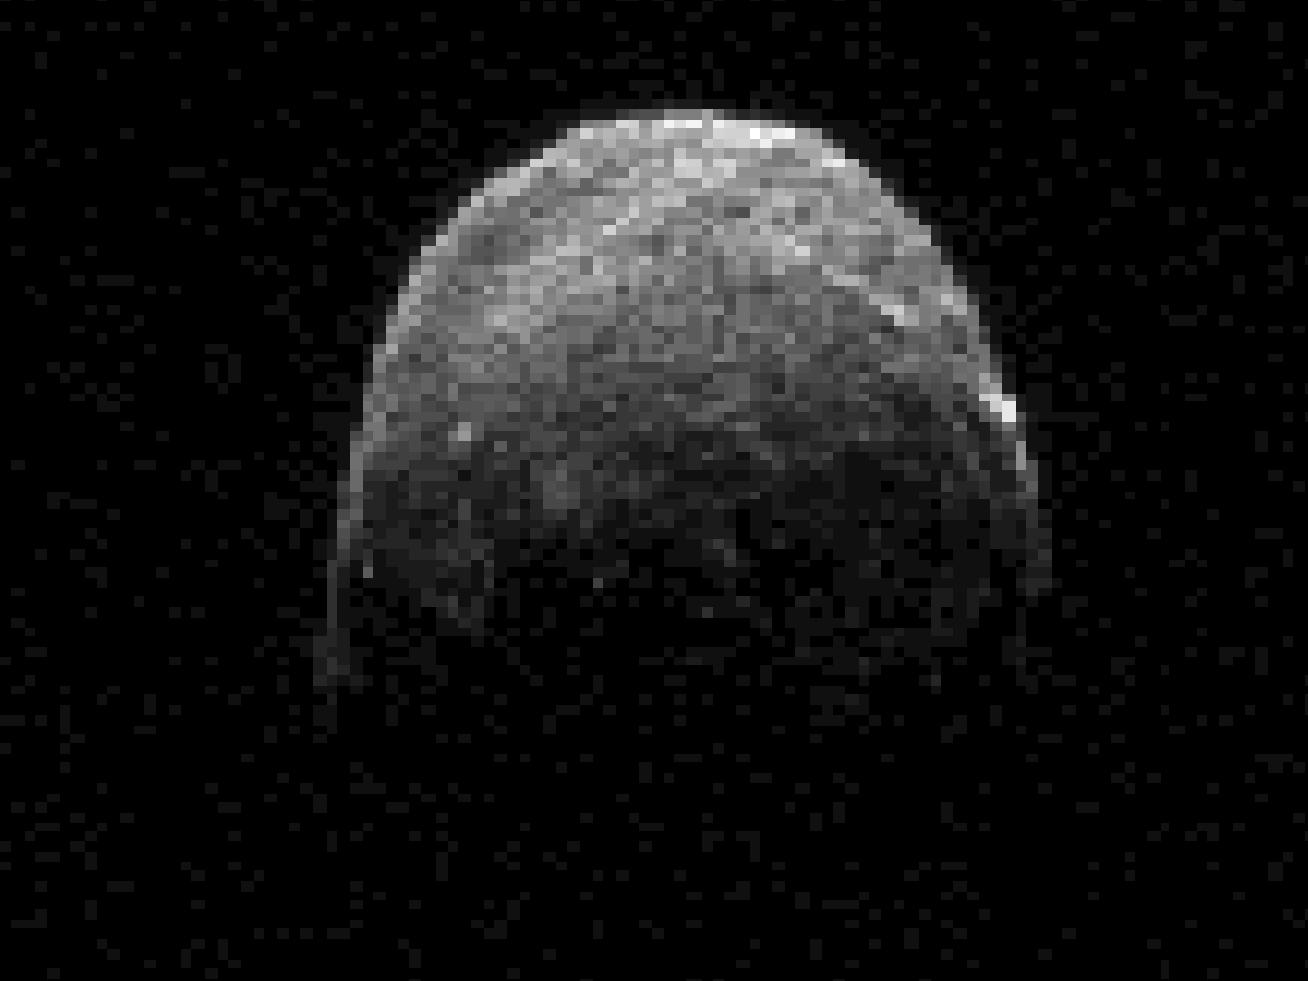 Huge Asteroid 2005 YU55 Zips by Earth in Rare Close Flyby